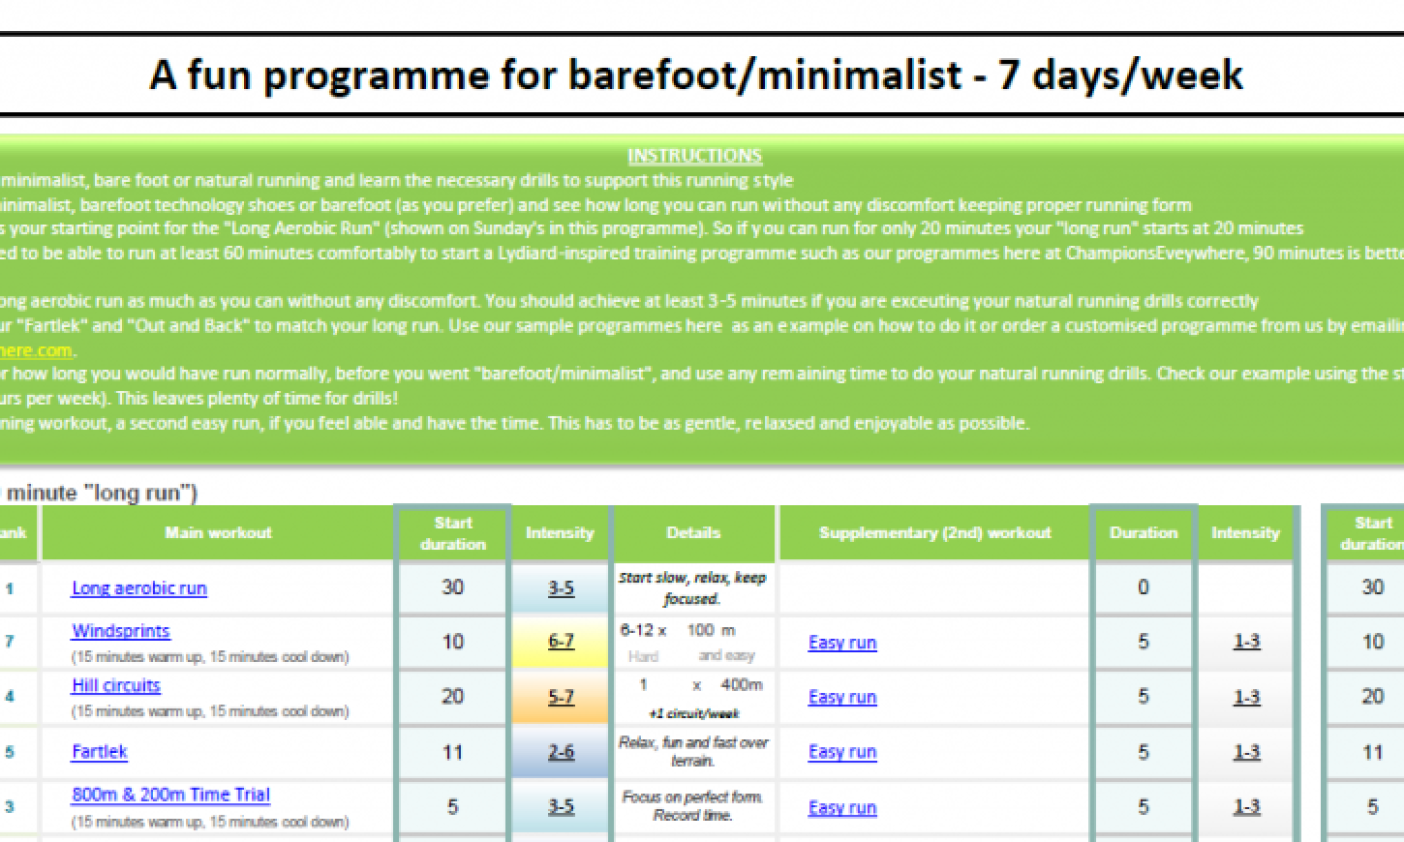 Fun transition programme for natural running, barefoot running and minimalist running